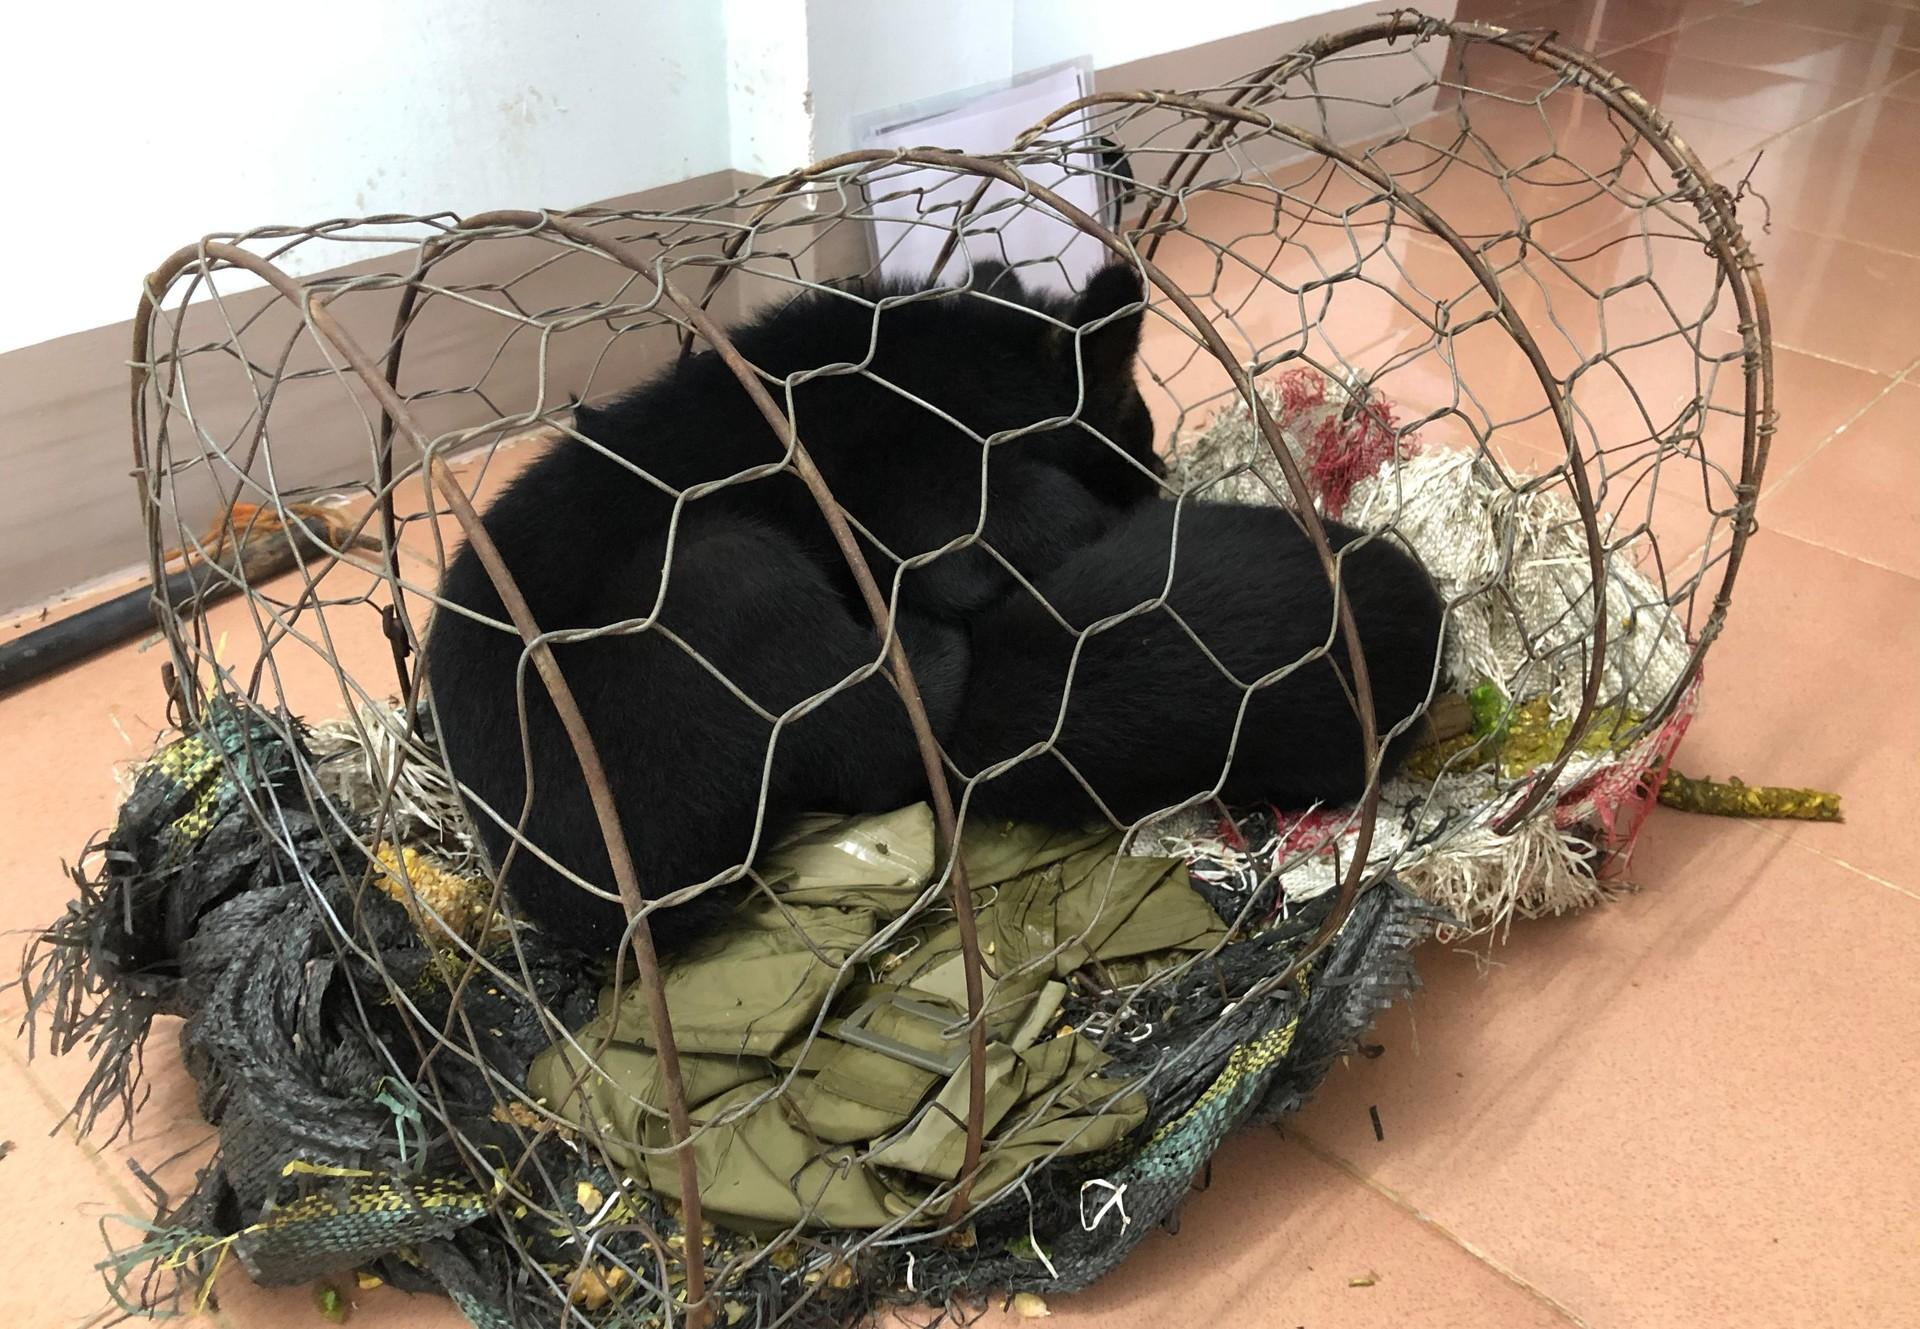 FOUR PAWS rescues two bear cubs from illegal wildlife trade in Vietnam